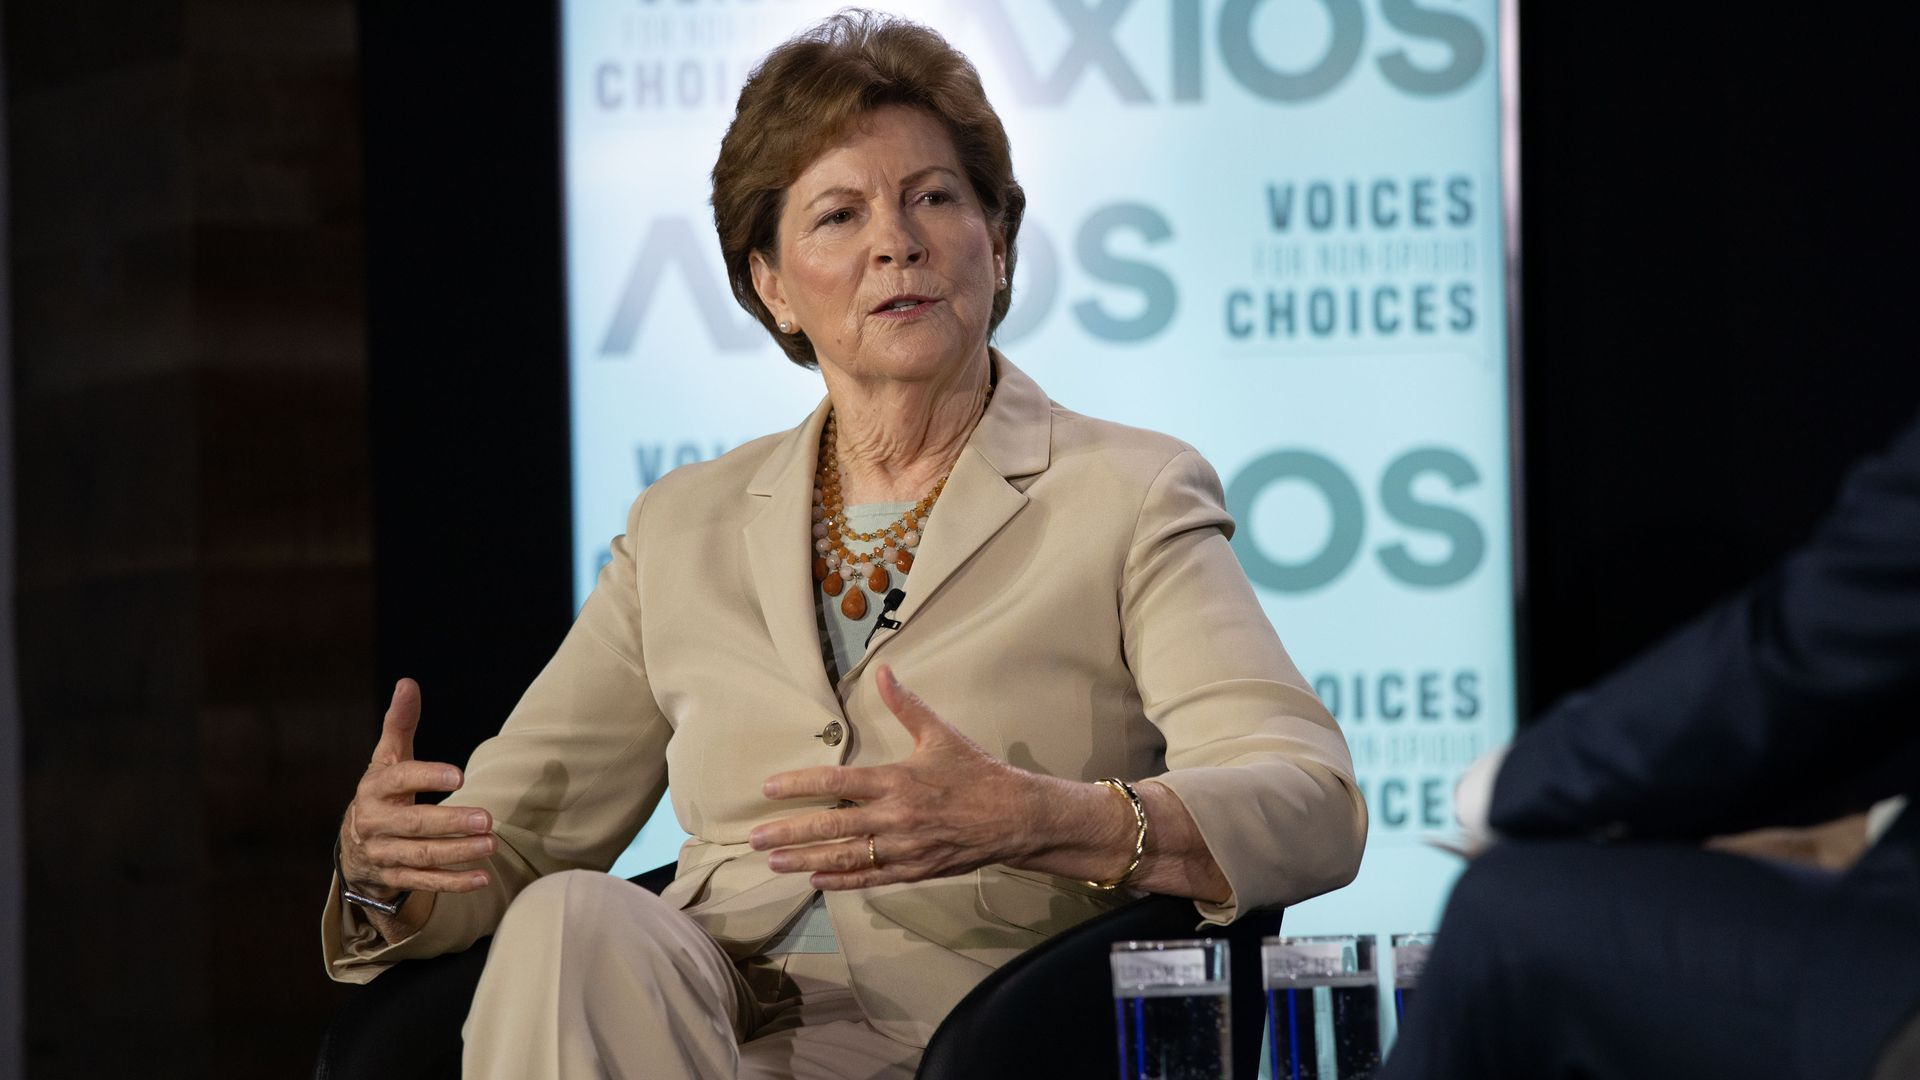 Senator Jeanne Shaheen of New Hampshire on the Axios stage.